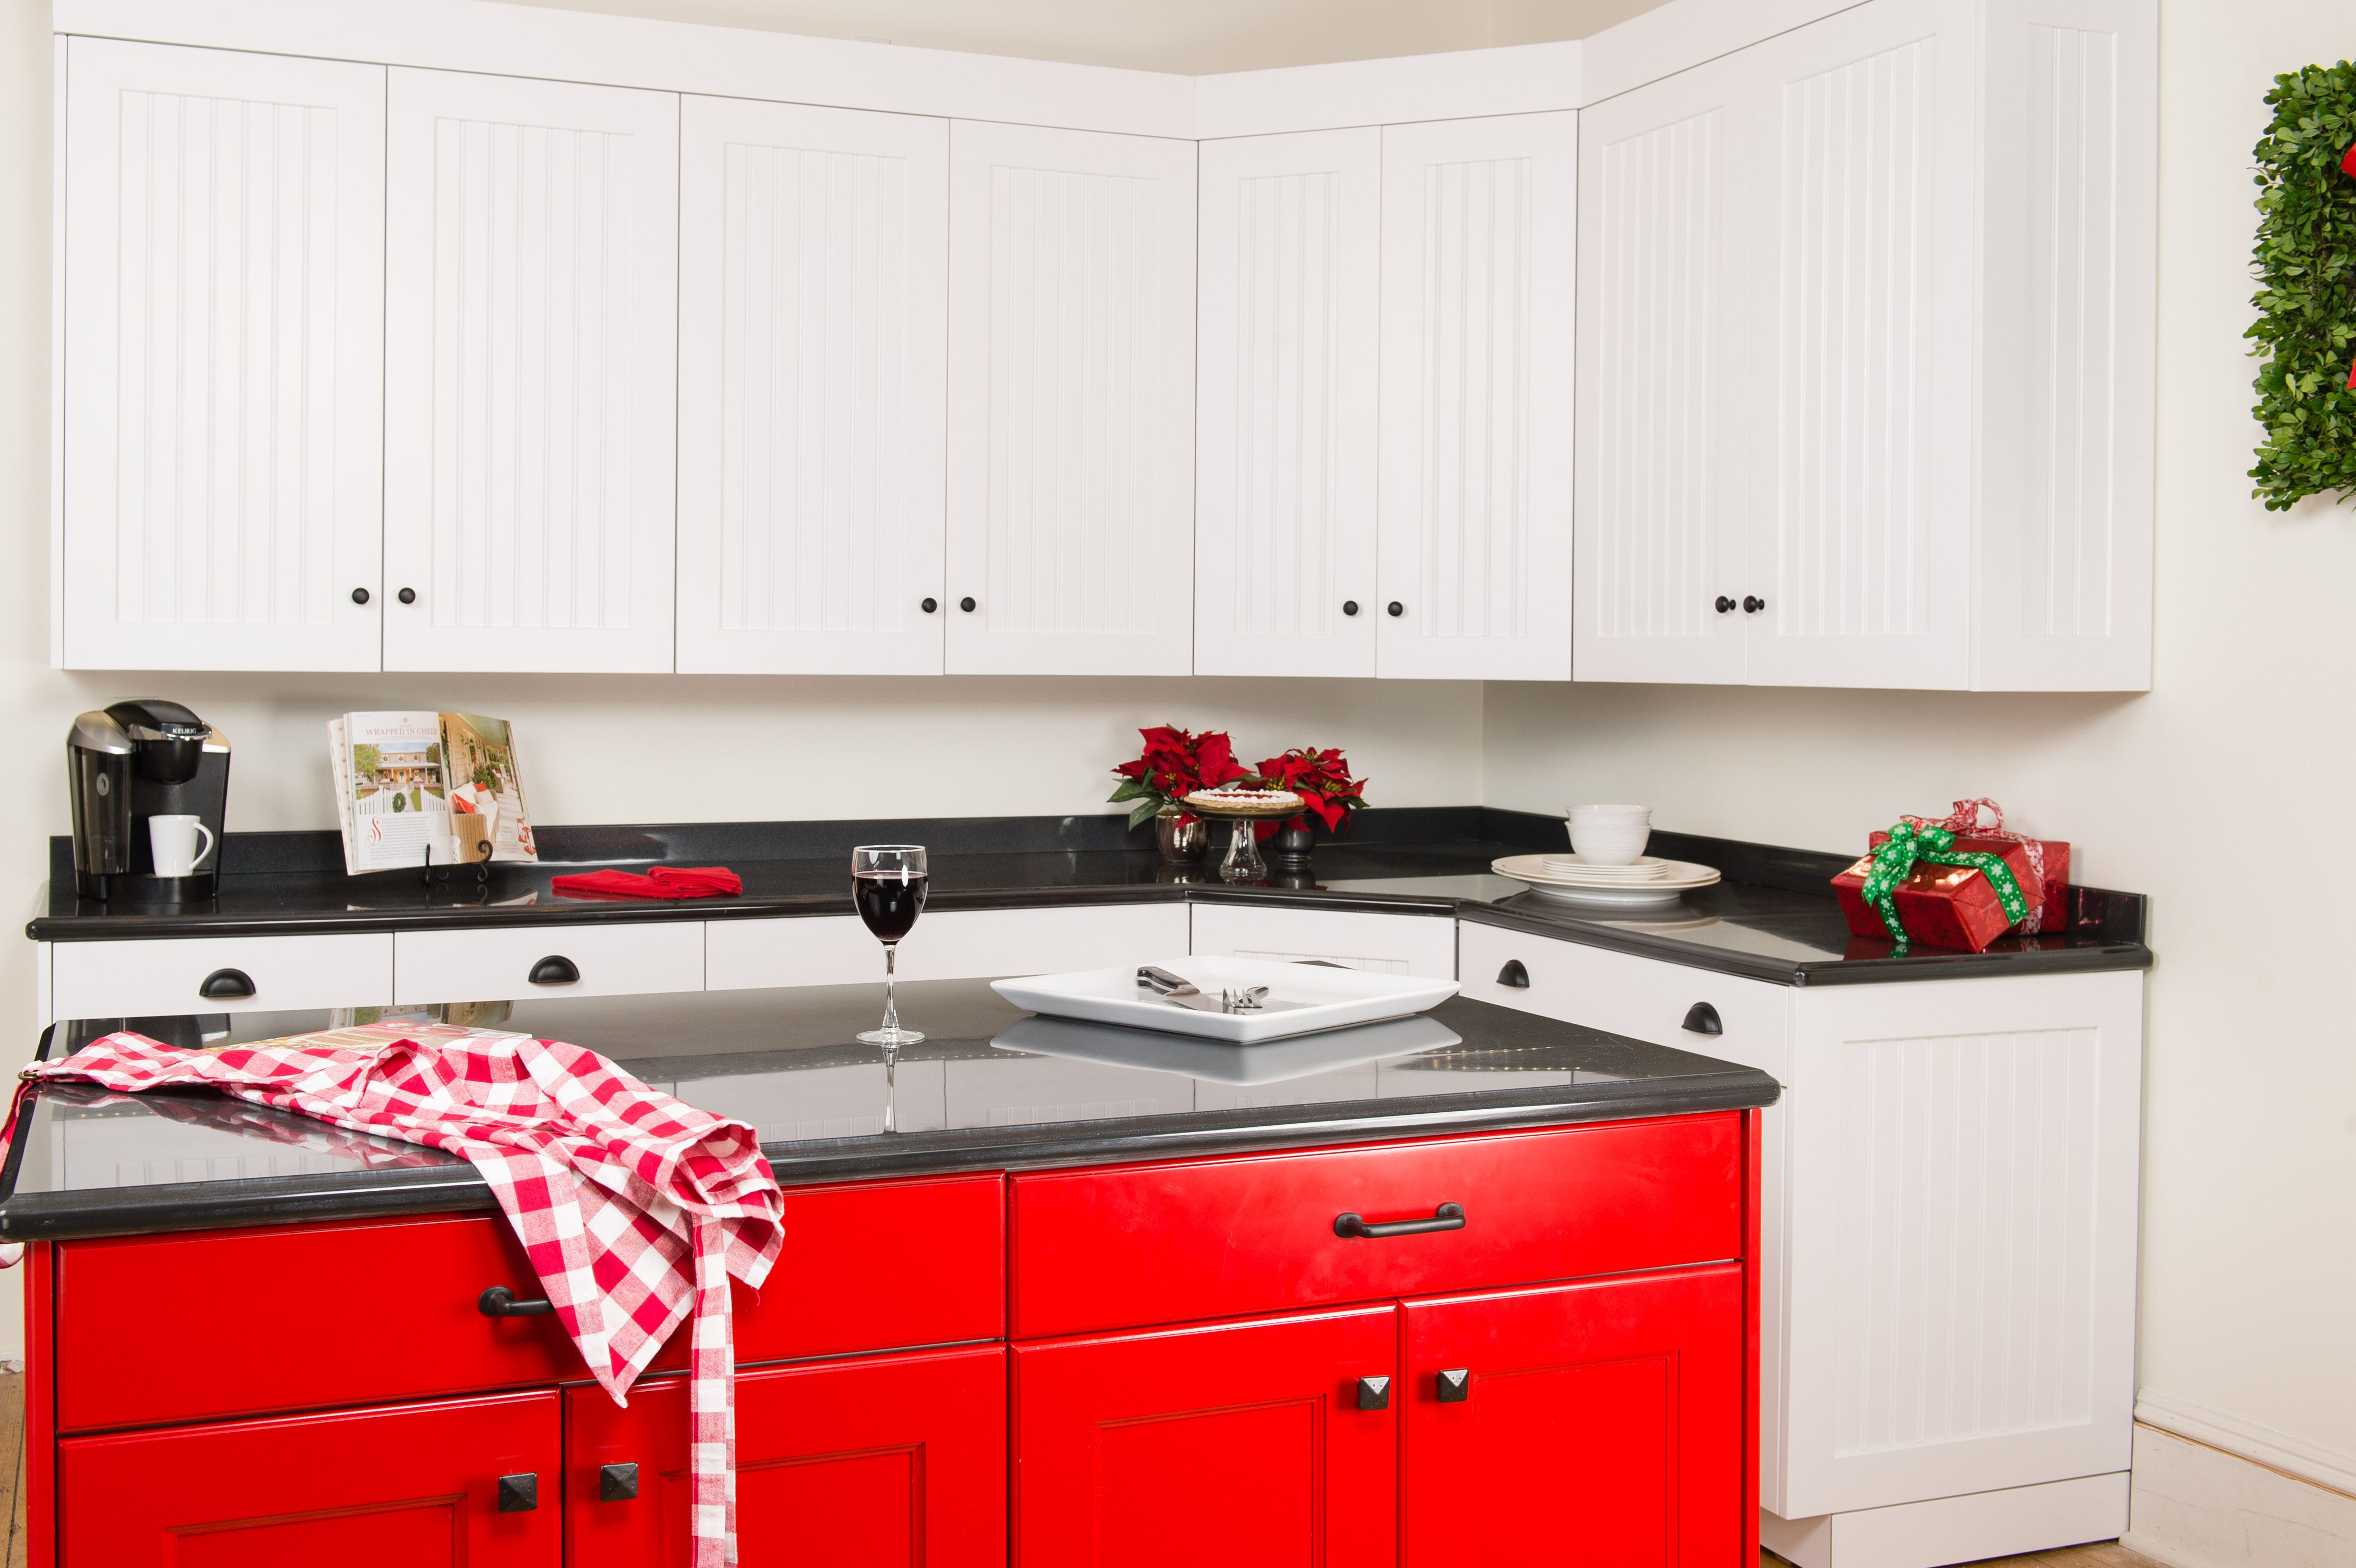 White Cabinets with a Red Island, very bold & bright ...